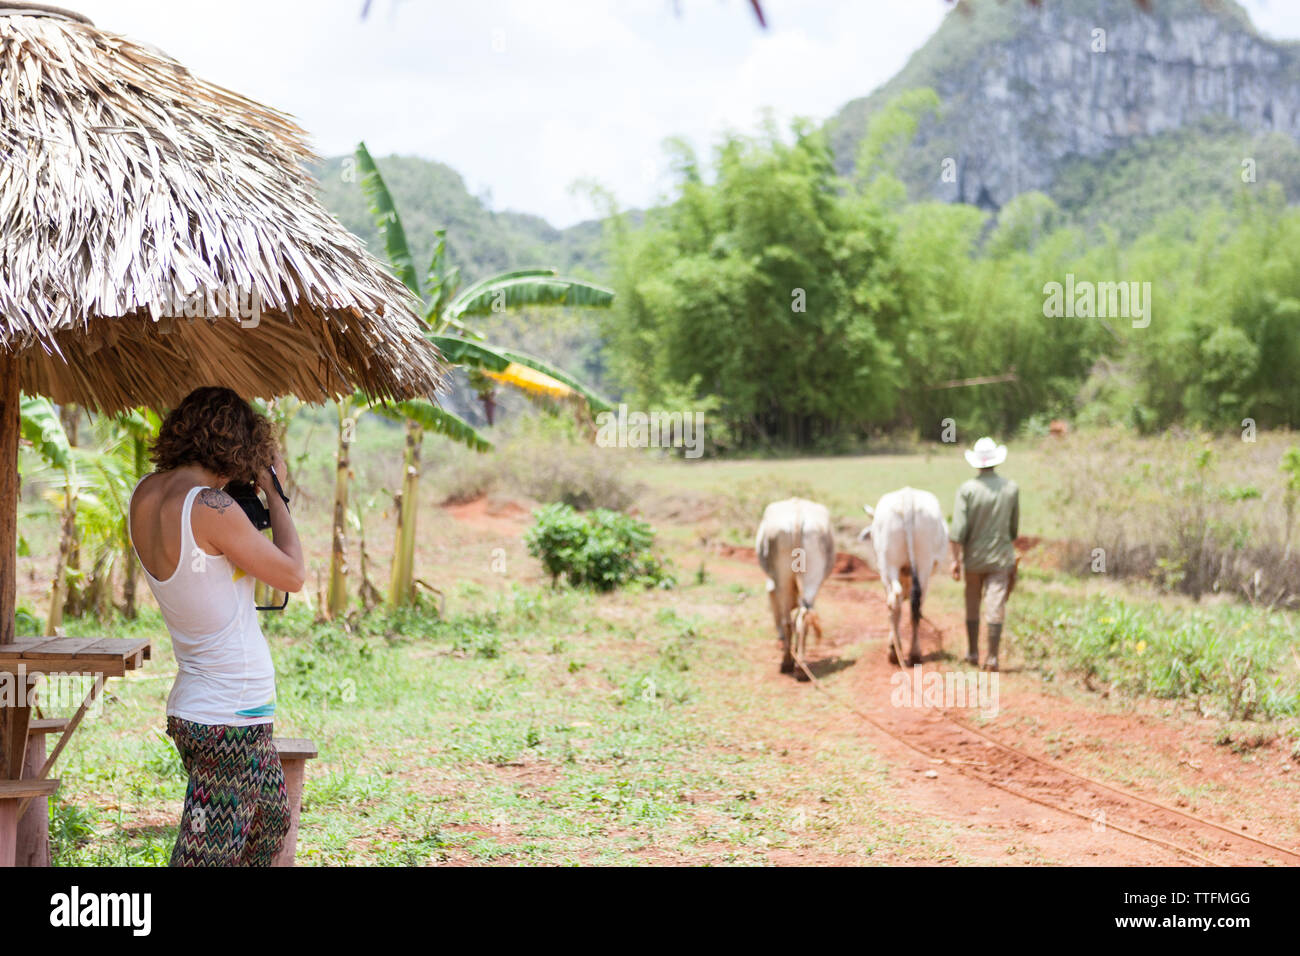 Western girl taking photo in the countryside, Vi̱ales Cuba - Stock Image